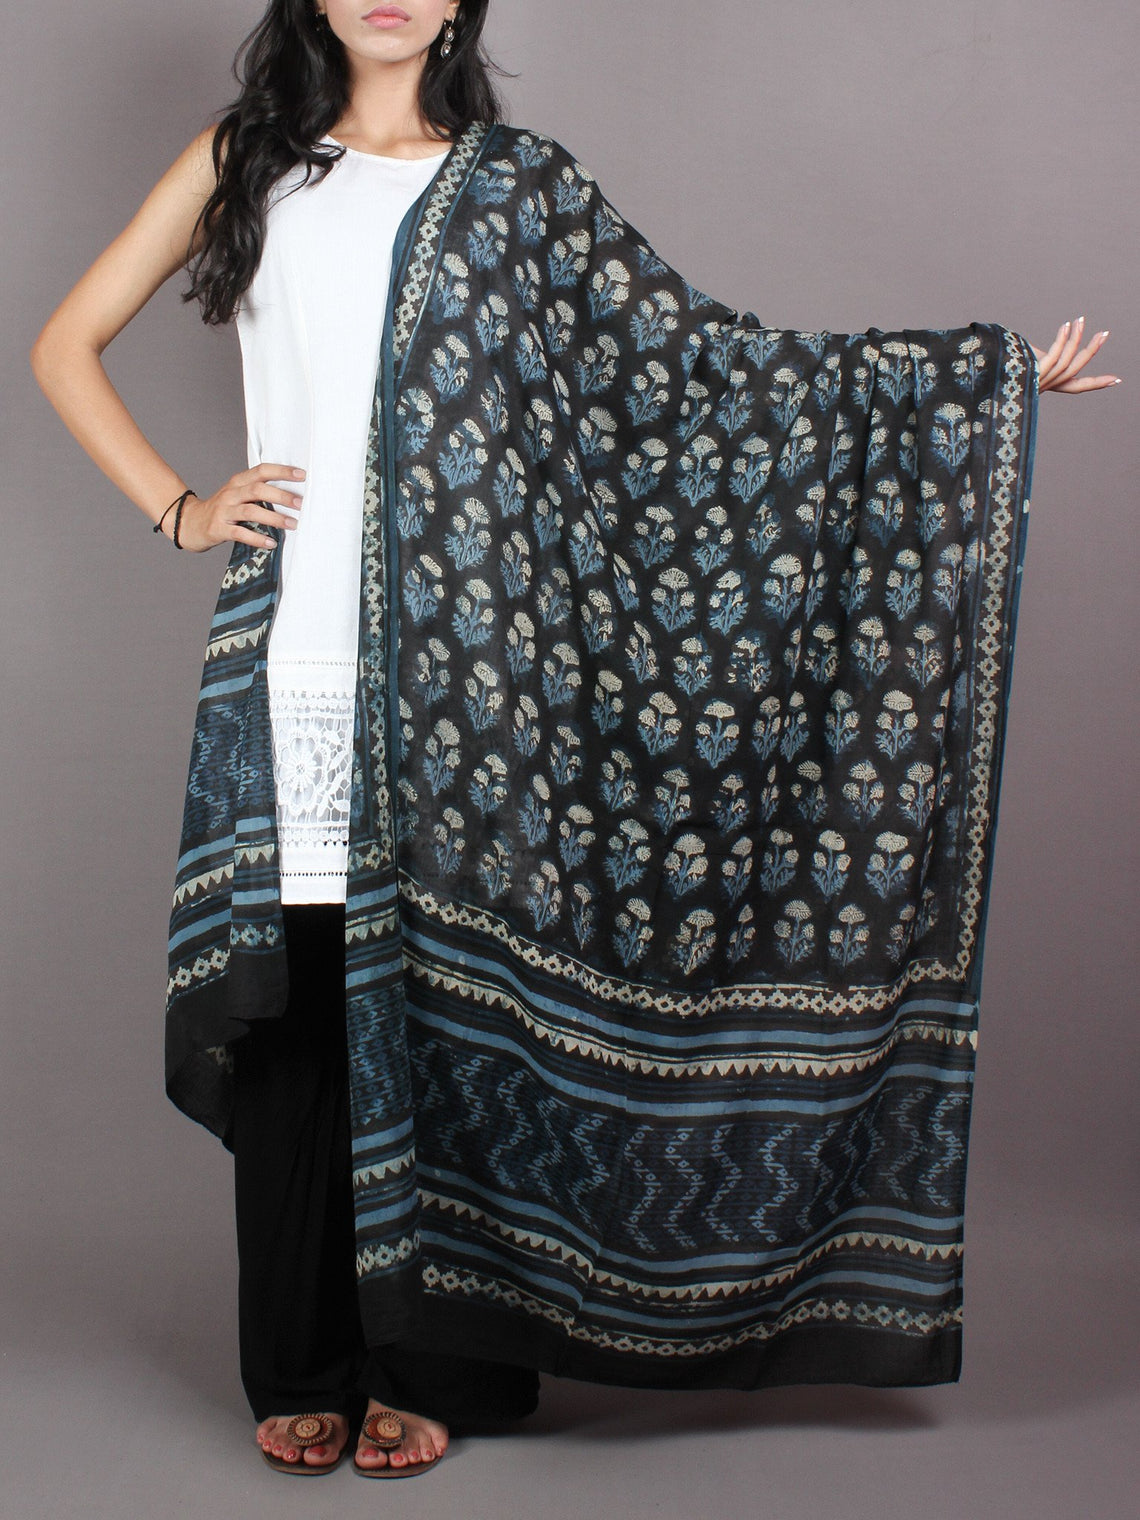 Indigo Multi Color Cotton Mul Hand Block Printed Dupatta - D0417066